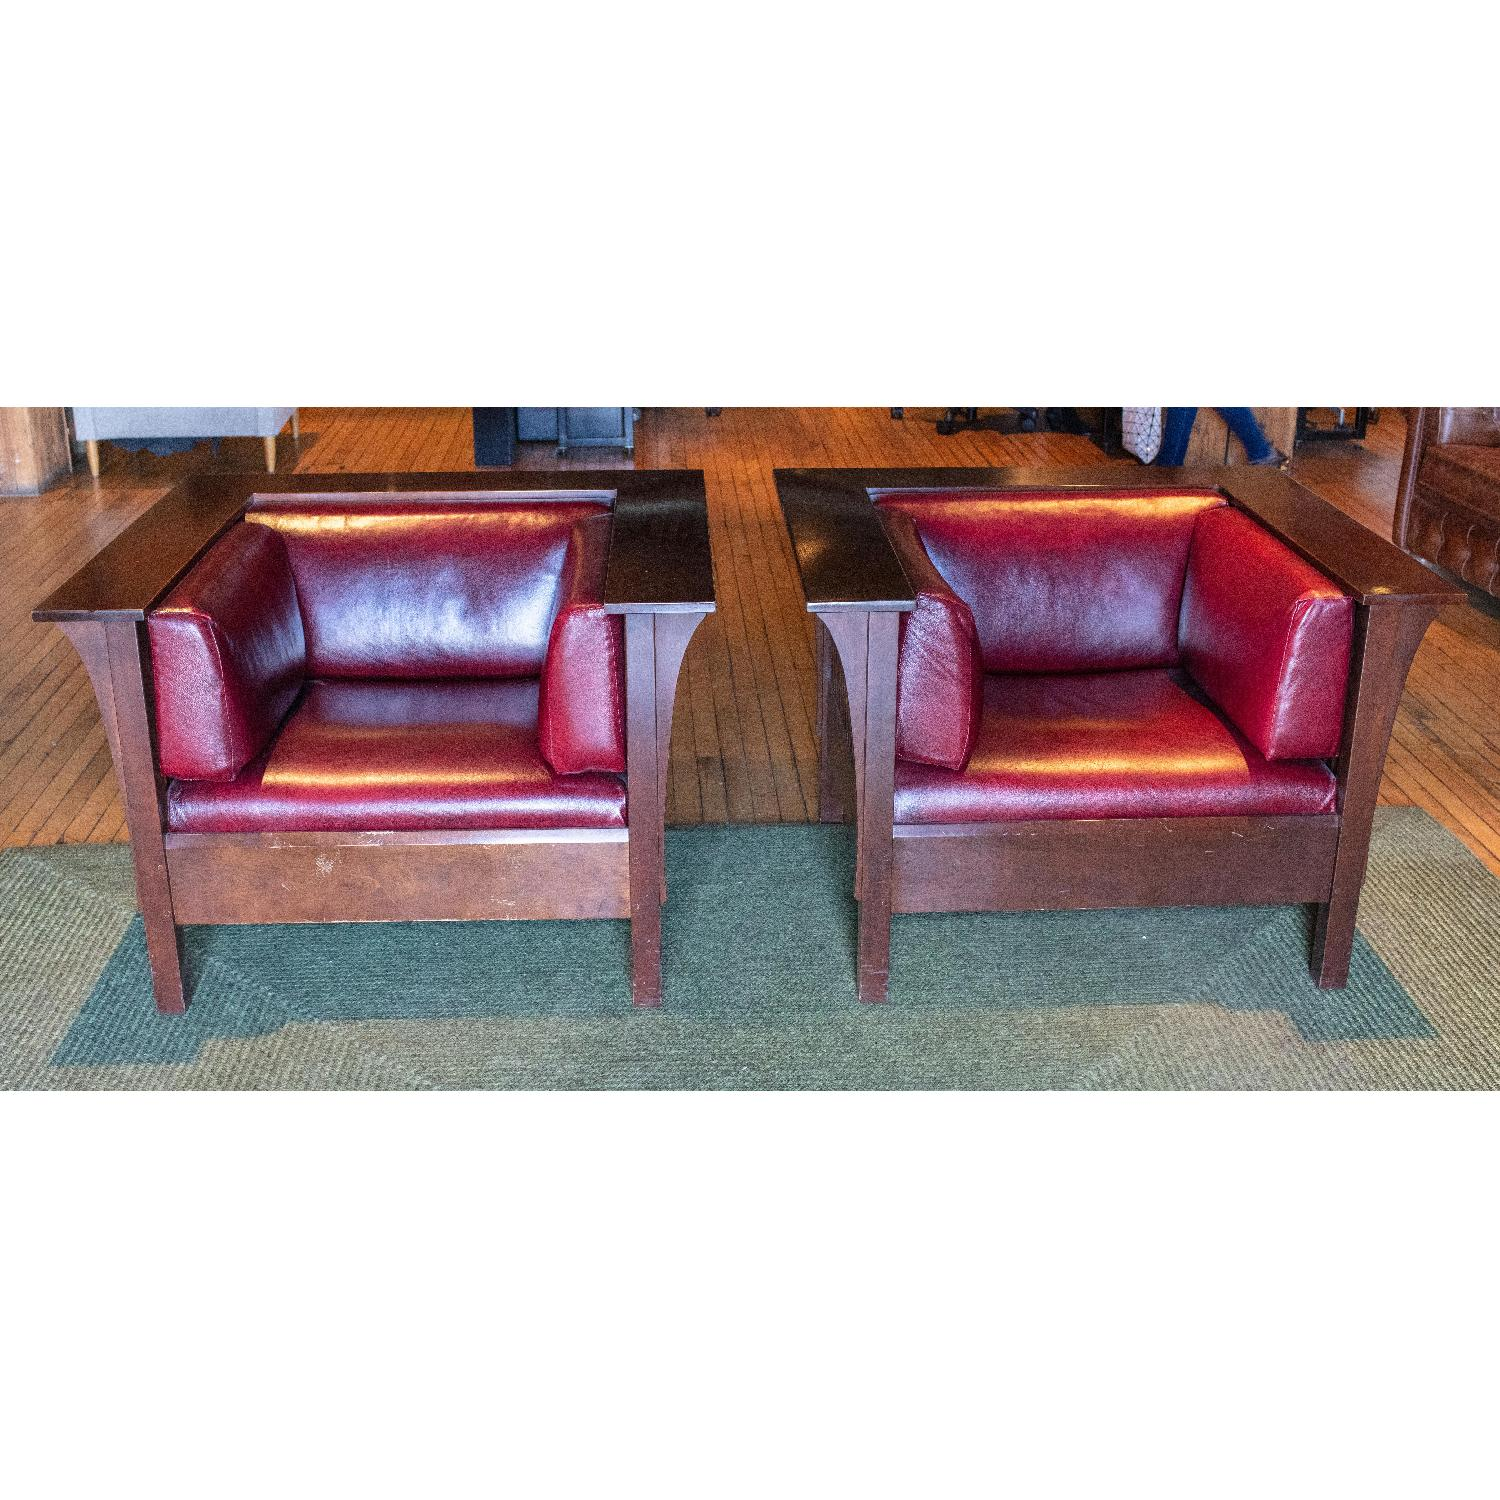 Stickley Prairie Spindle Chairs - image-1